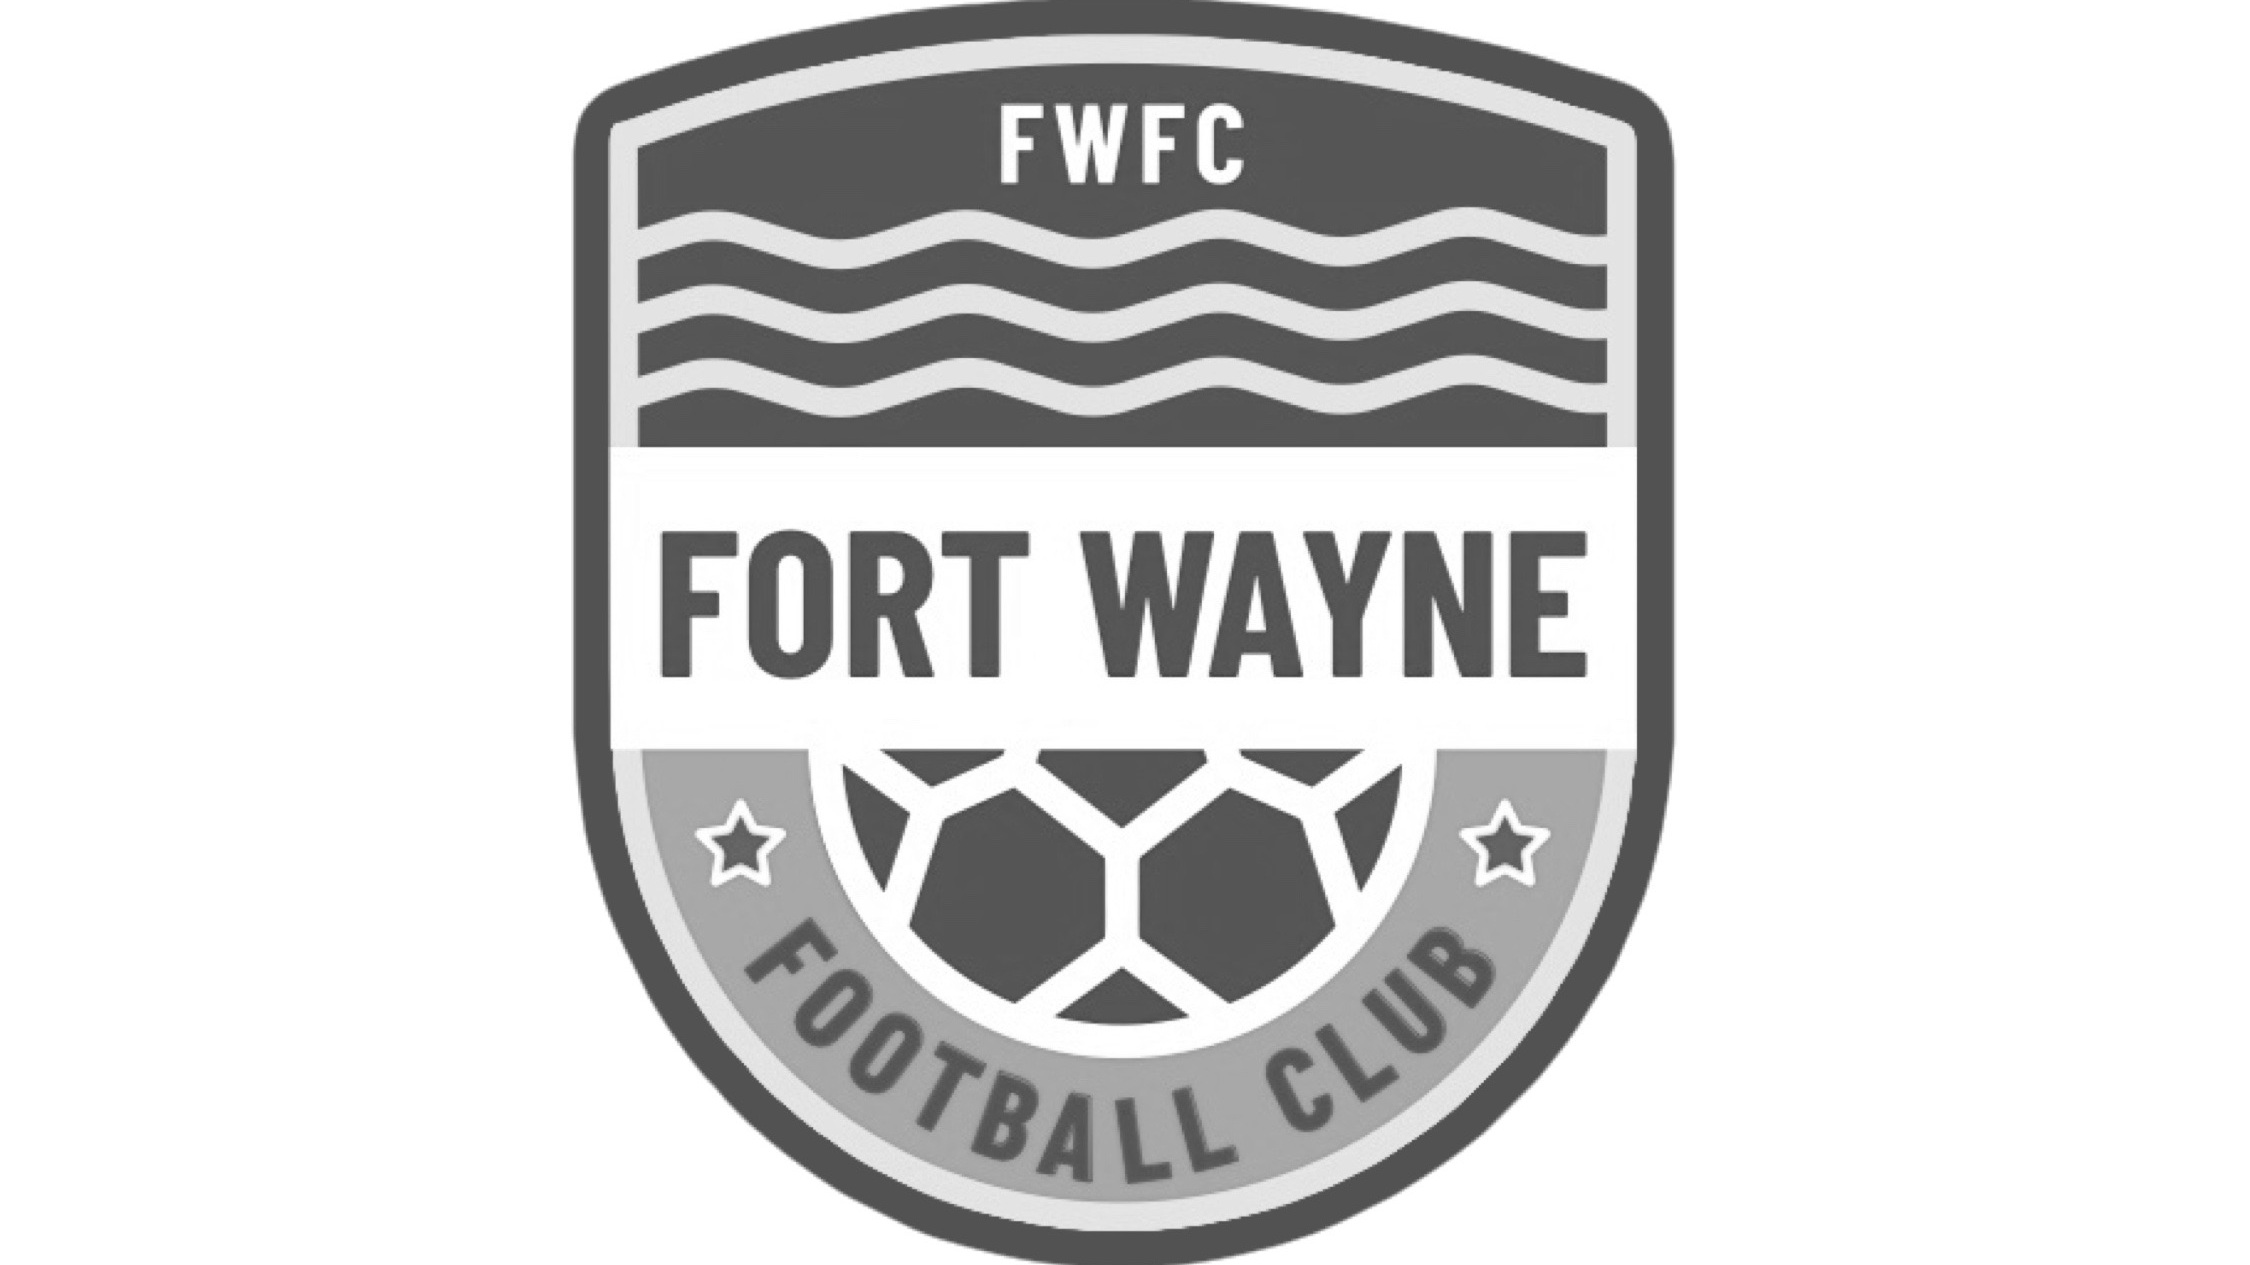 TBD - Merchandise Design ManagerDesigns Fort Wayne FC gear, communicates and coordinates fan gear shipment from suppliers. Researches popular trends and soccer fan gear.